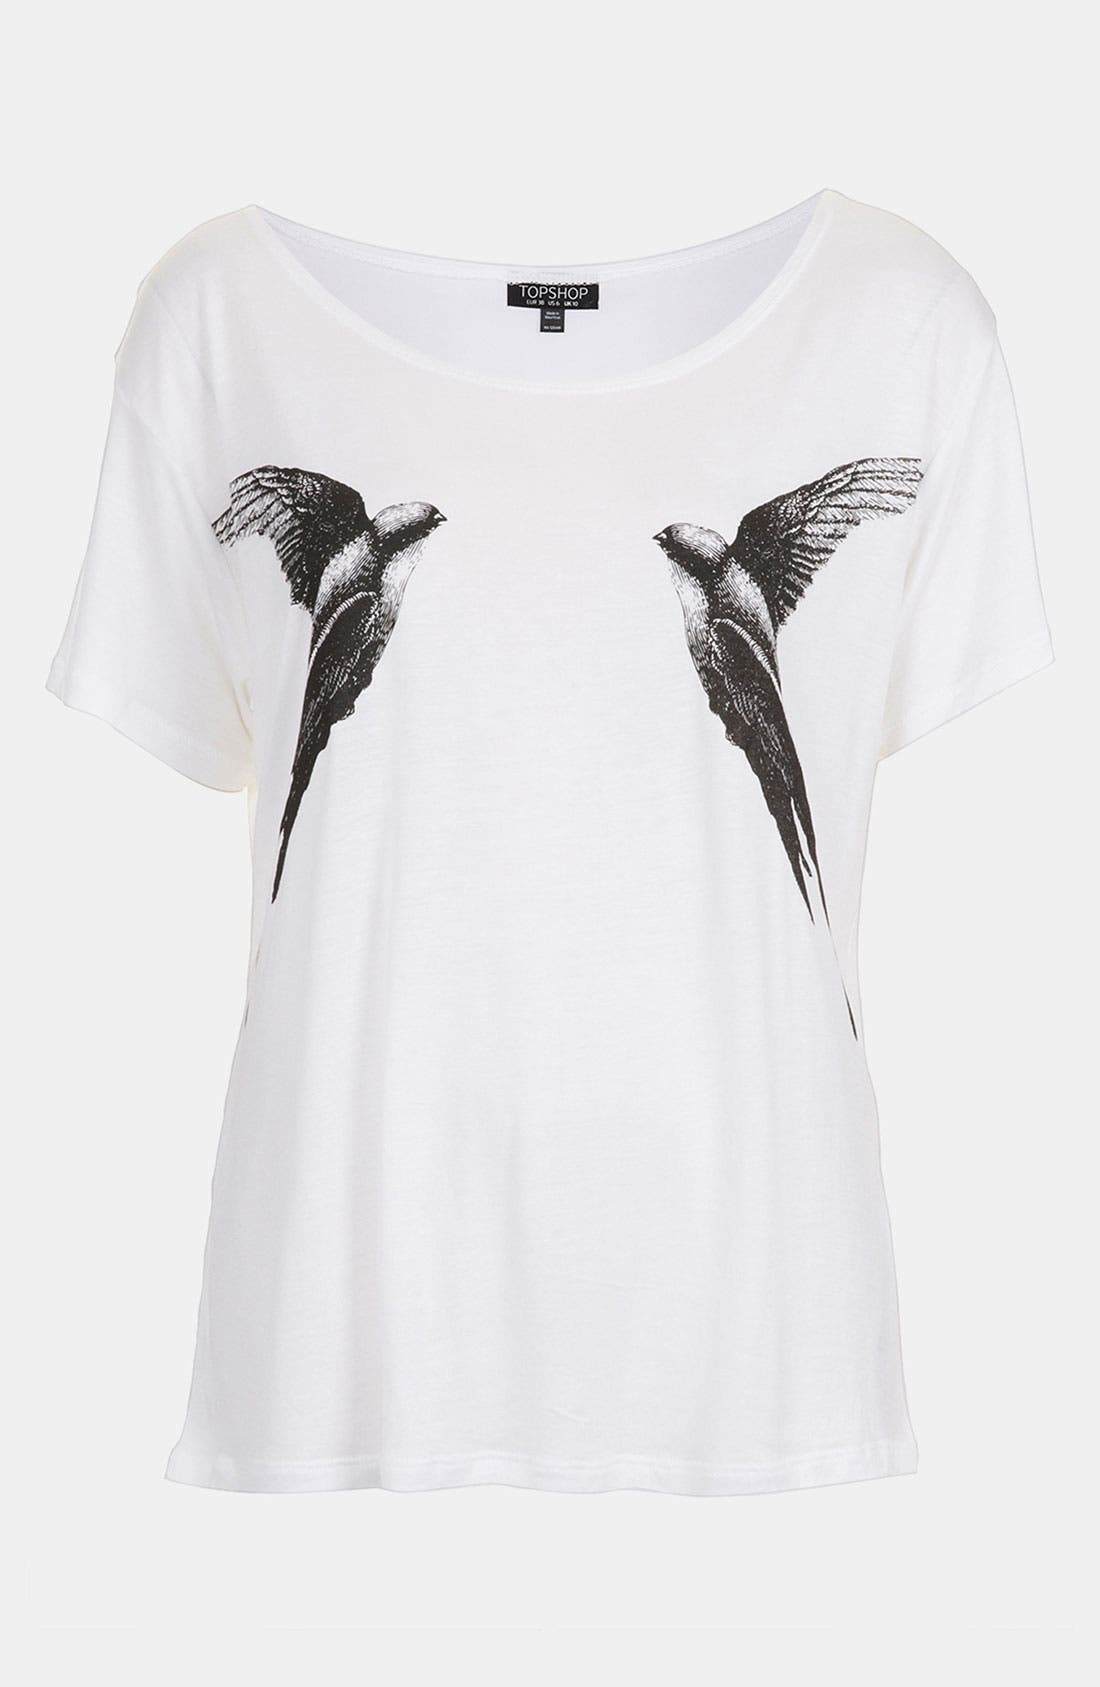 Alternate Image 1 Selected - Topshop 'Mirror Bird' Graphic Tee